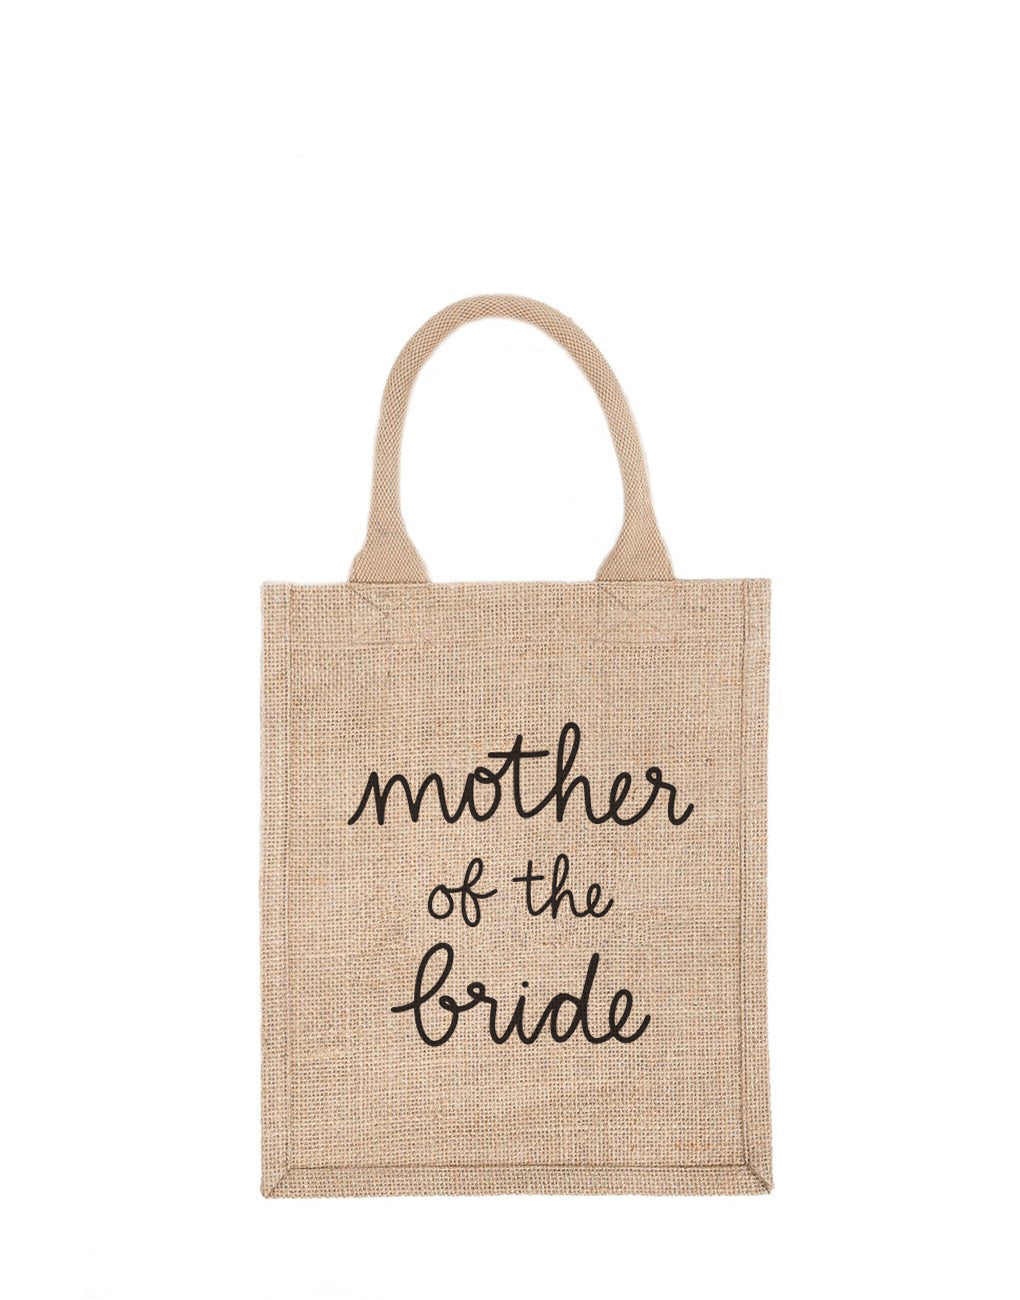 Medium Mother Of The Bride Reusable Gift Tote In Black Font | The Little Market